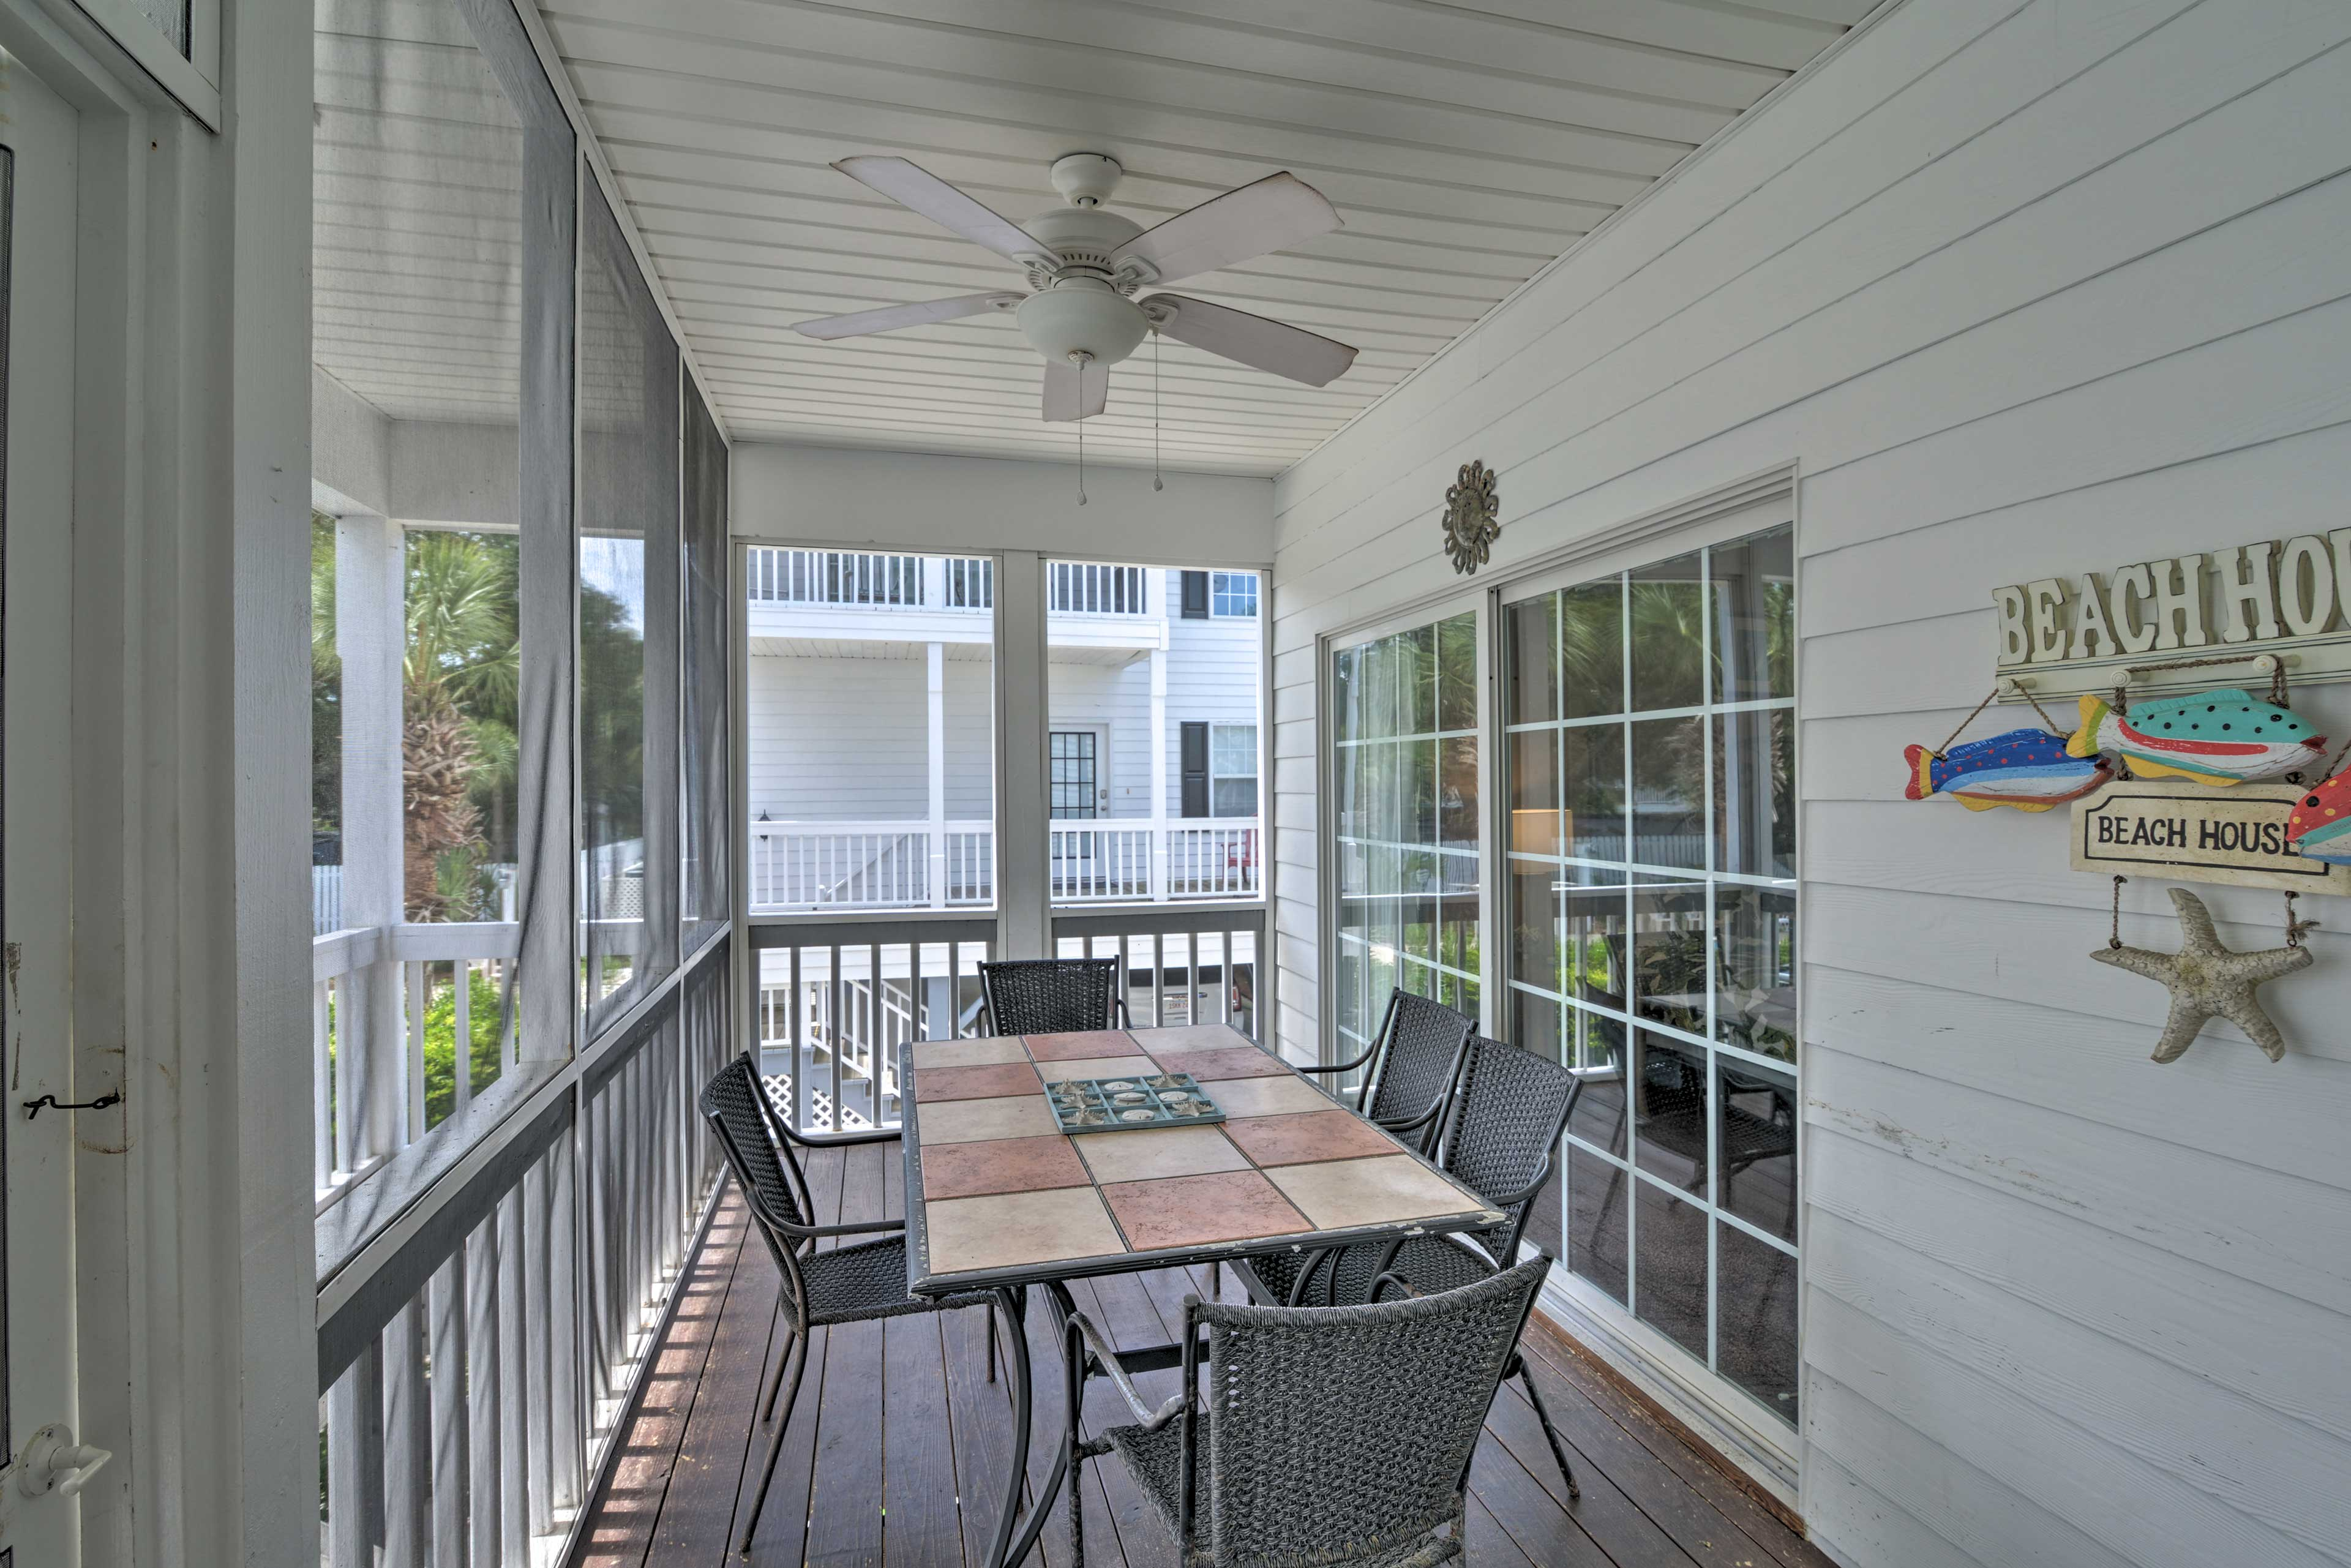 Feast al fresco in the comfort of the screened porch.